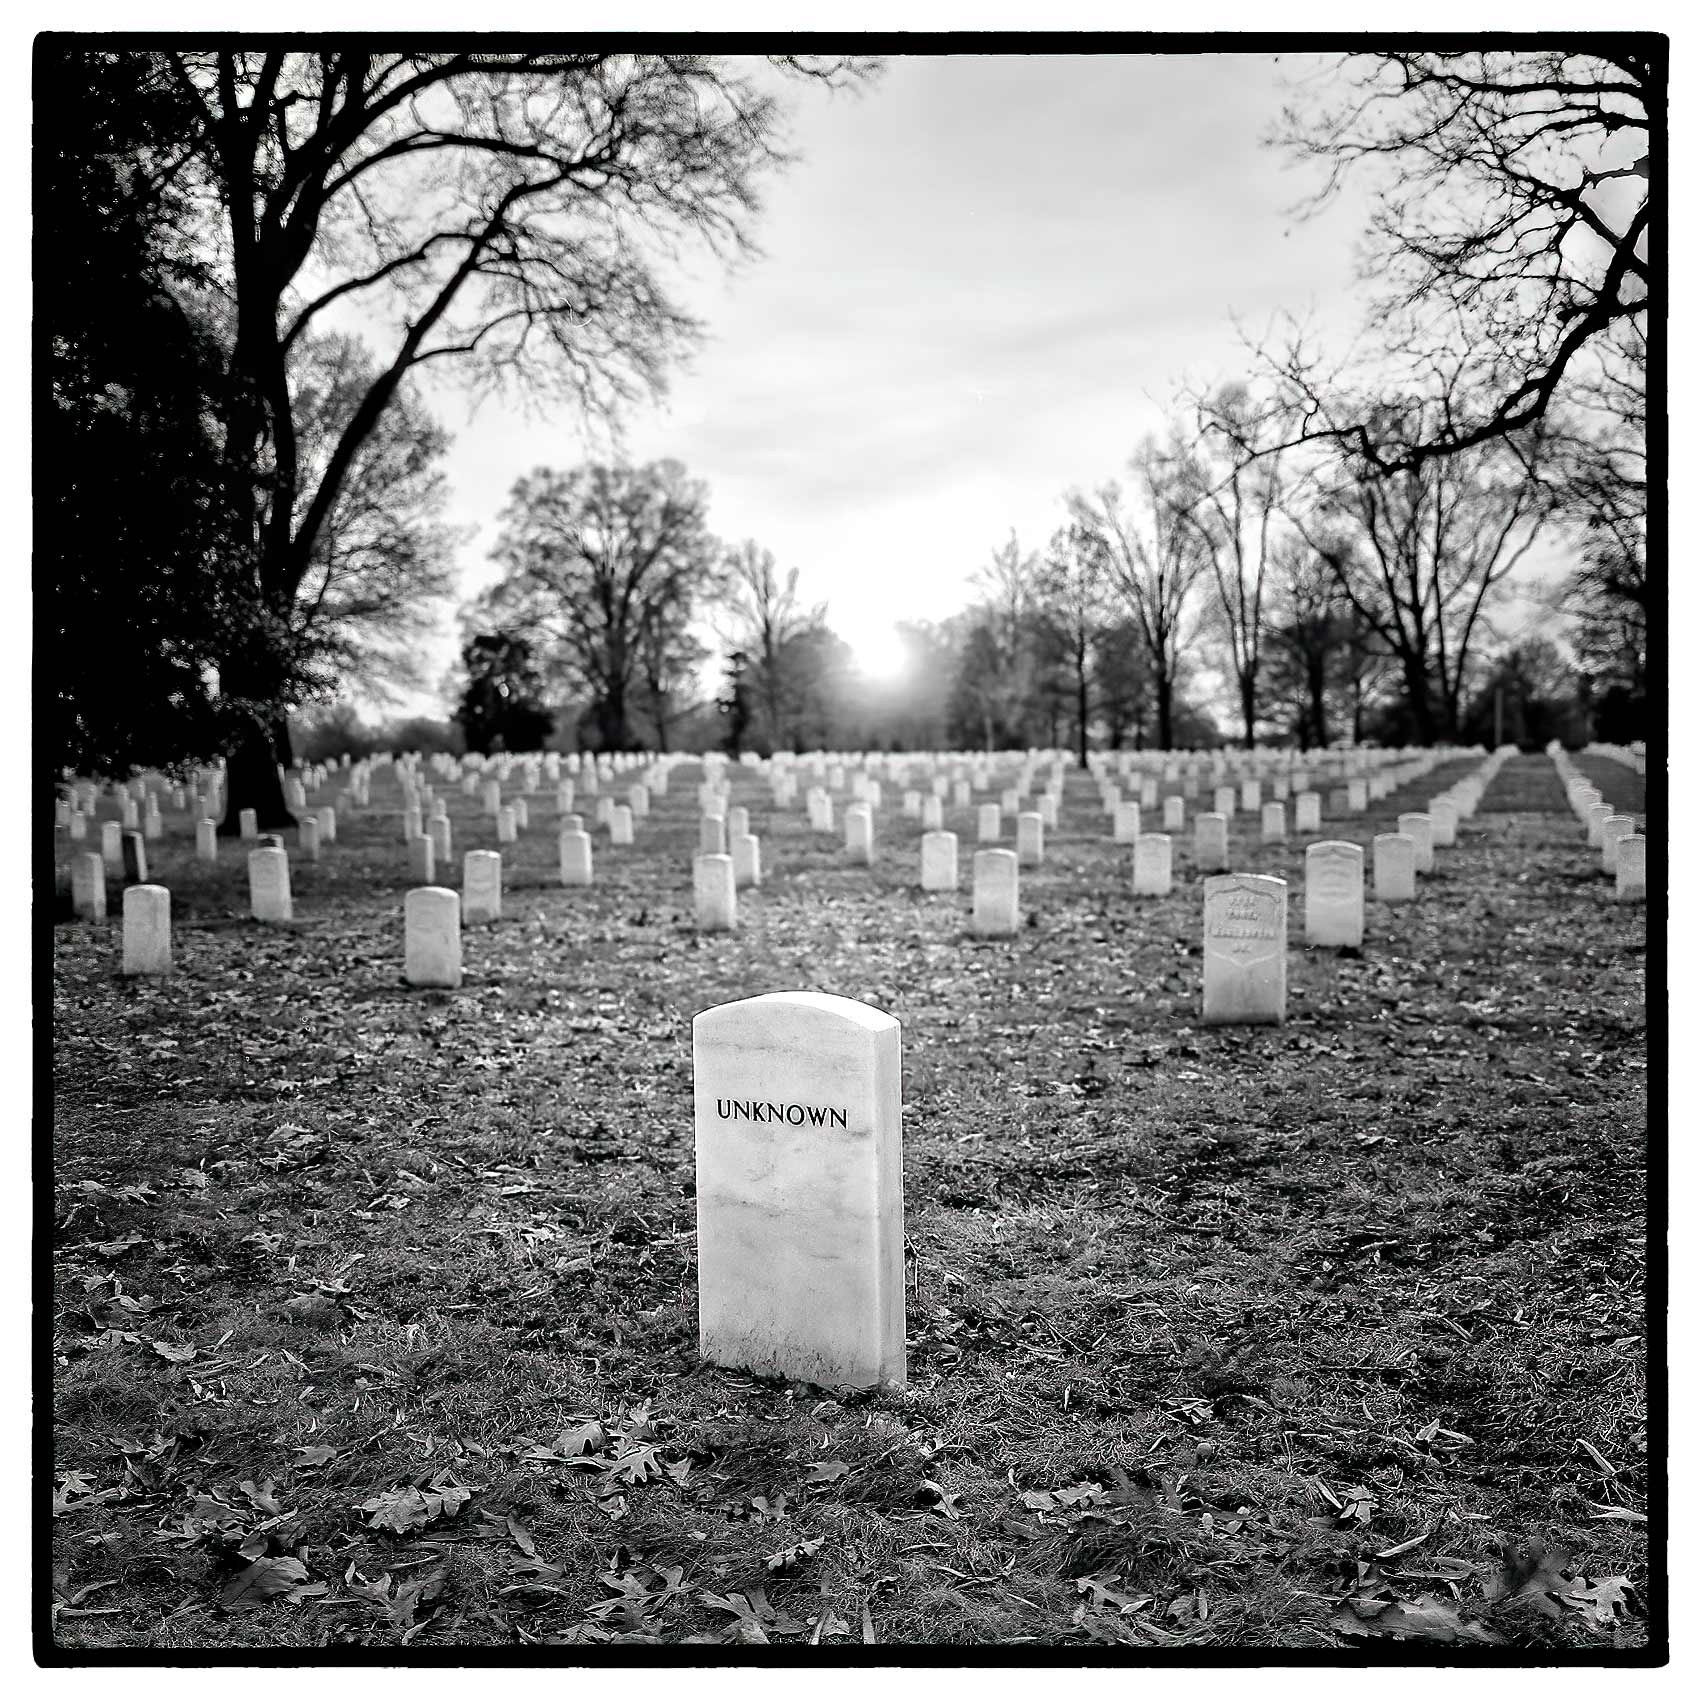 grave-of-unknown-soldier-at-arlington-national-cemetery-near-washington-dc